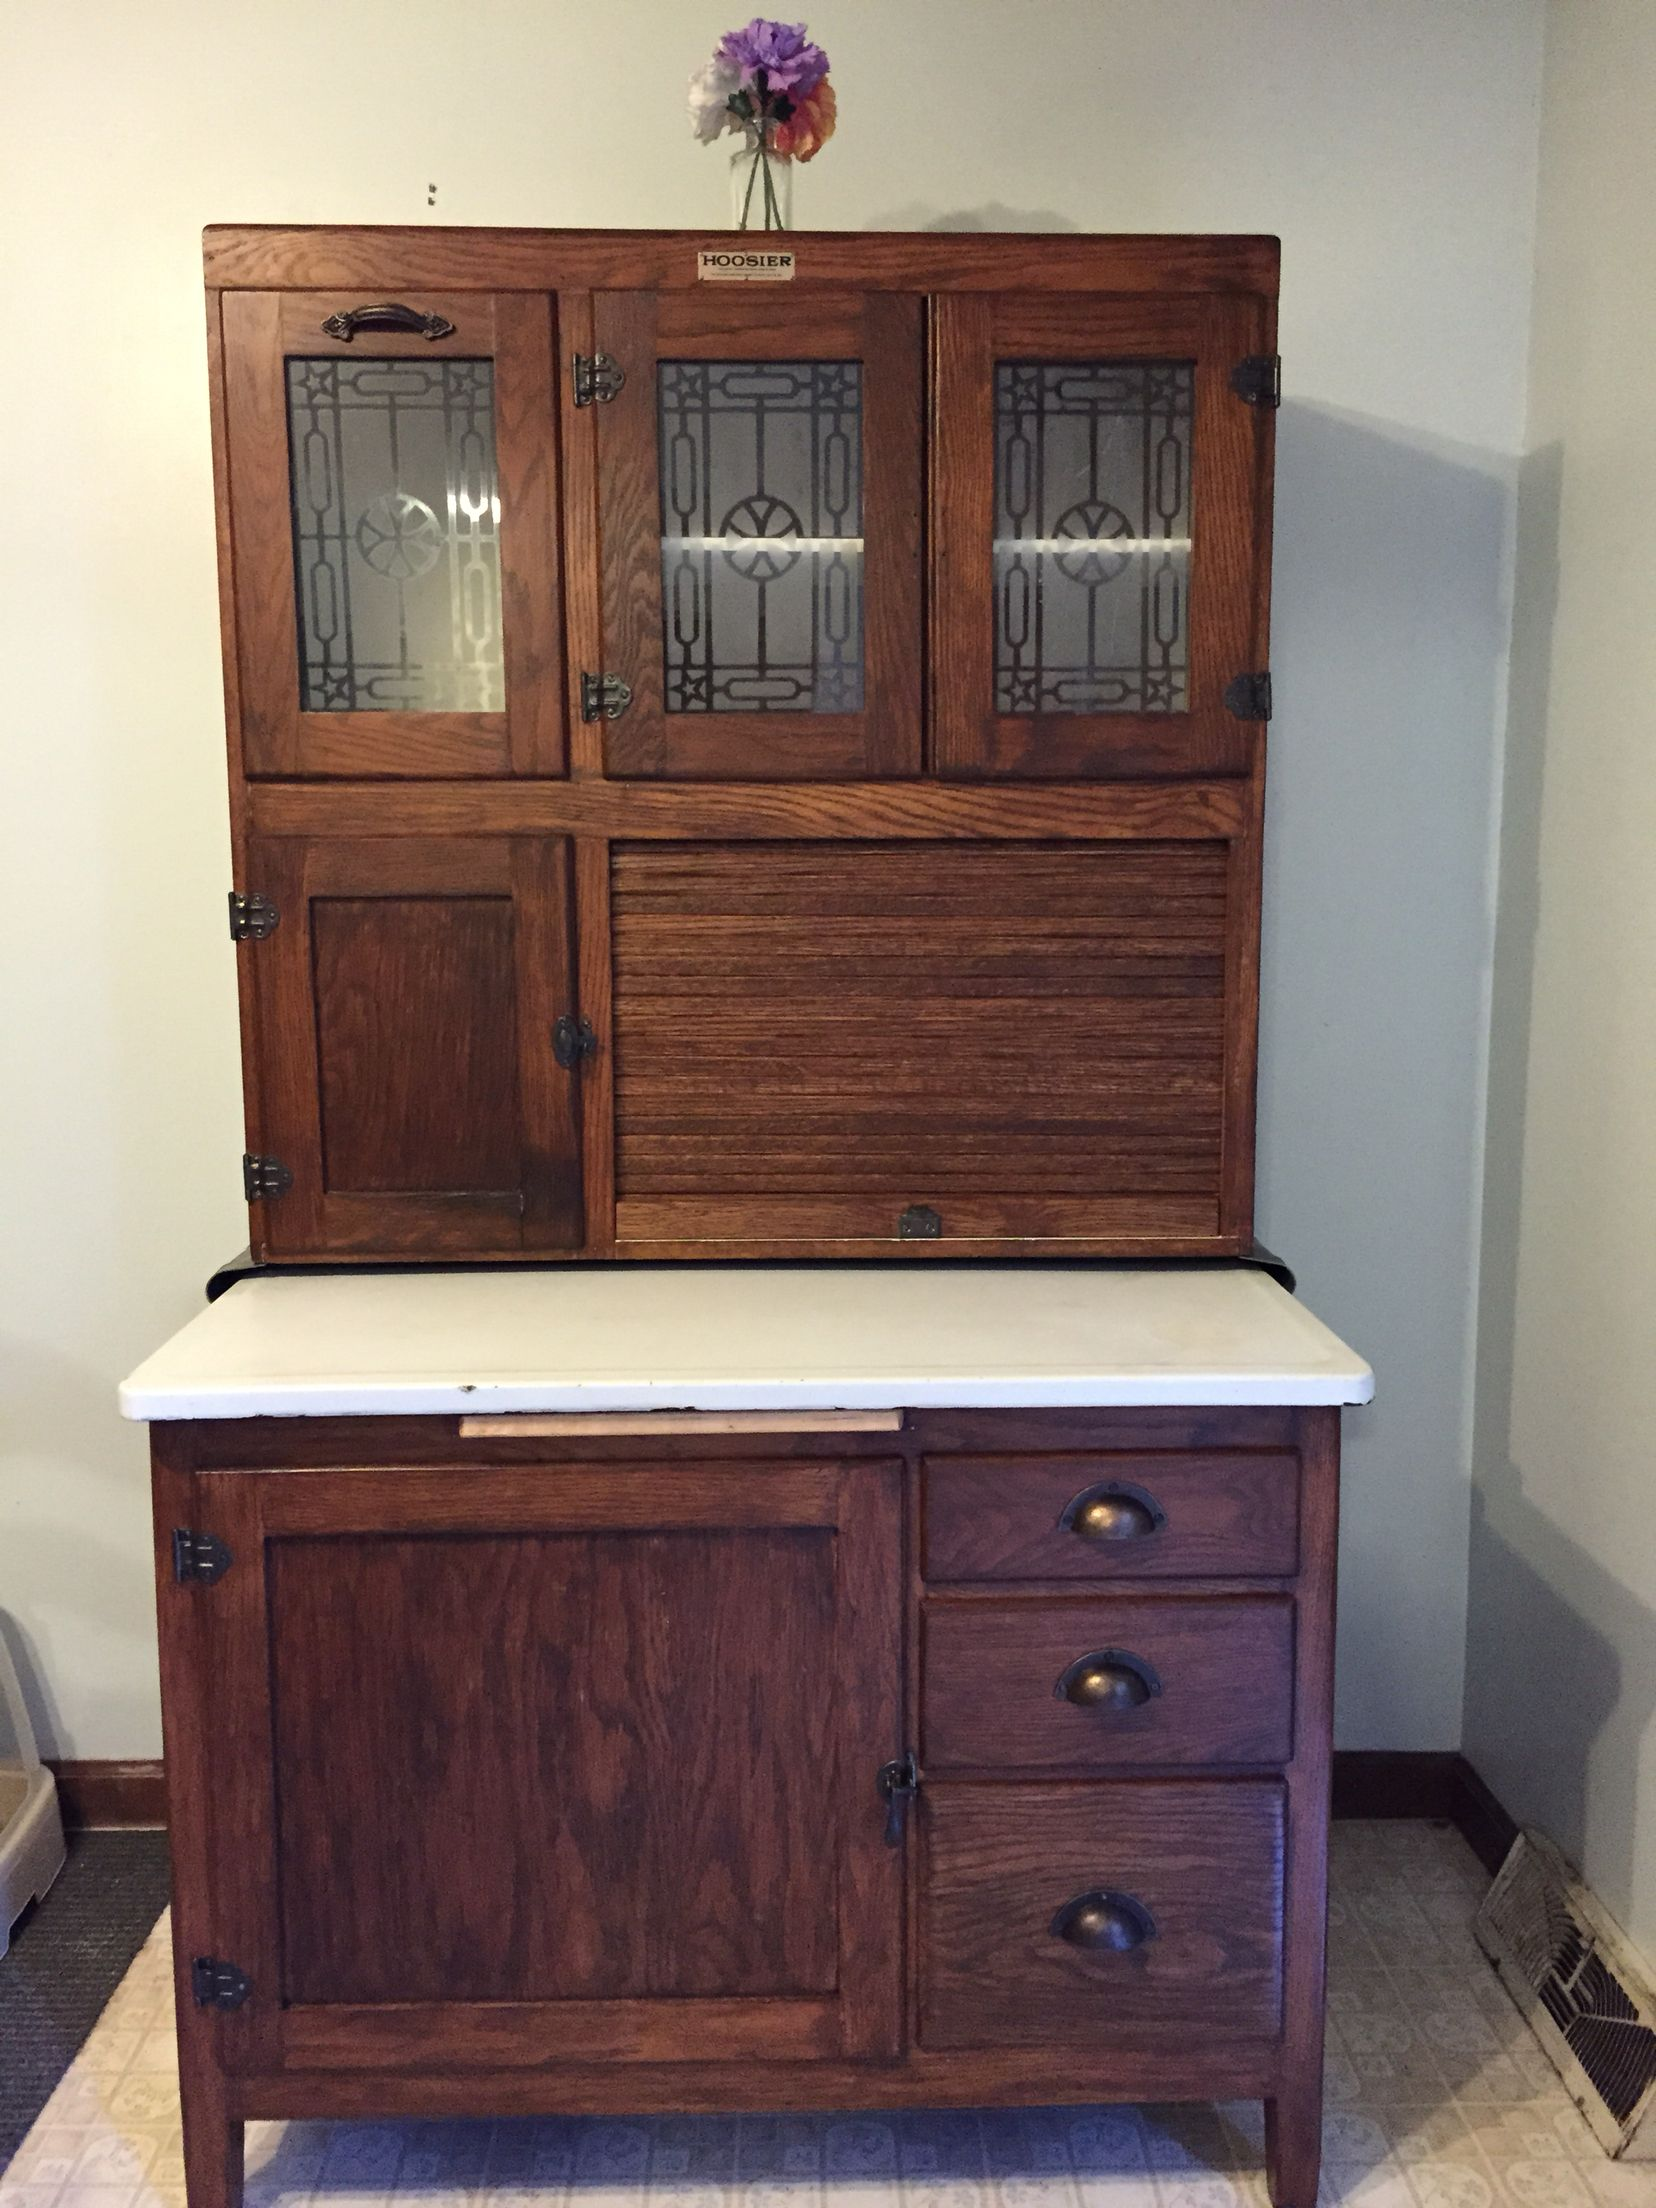 This Is My Momu0027s Hoosier Cabinet After 5 Weeks Of Restoration. I Stripped  It Down With Citristrip And Sanded It. I Then Used A Coat Of General  Finishes ...